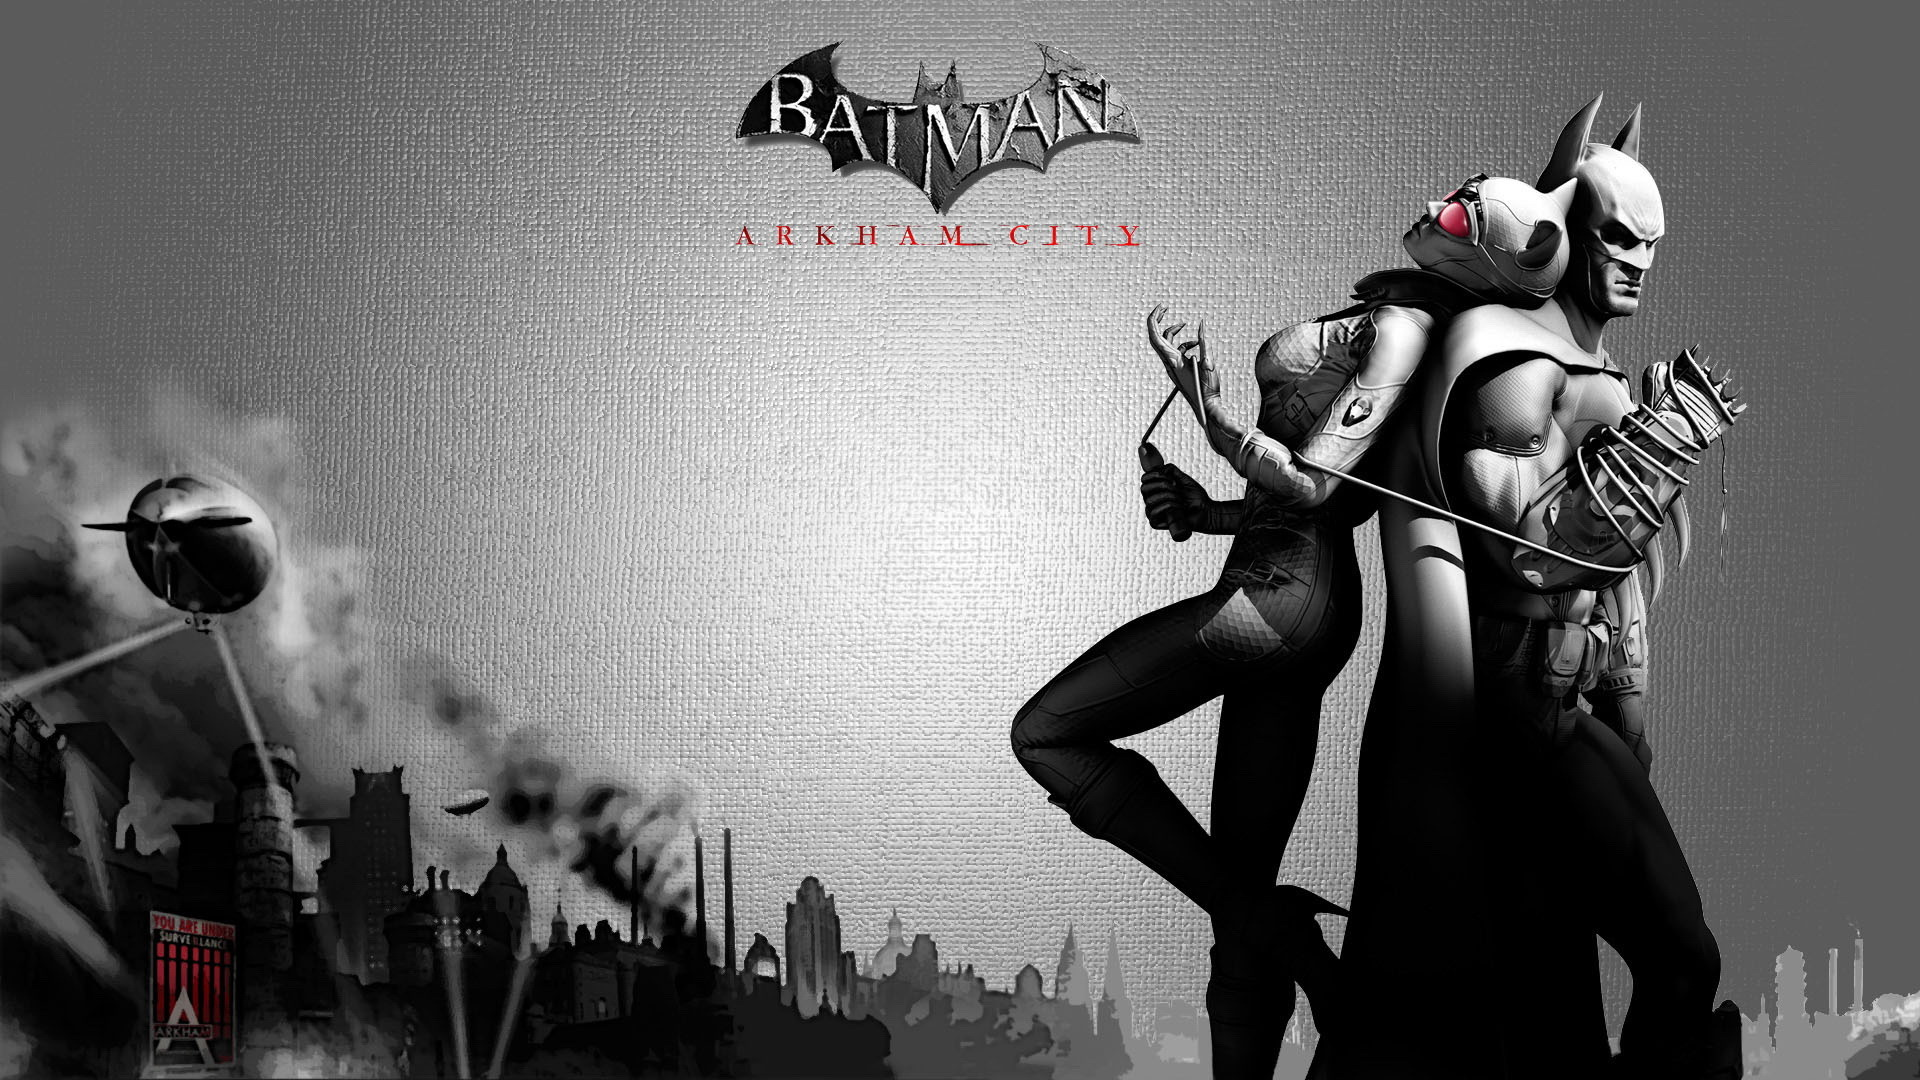 Batman   Arkham City wallpaper 14046 1920x1080